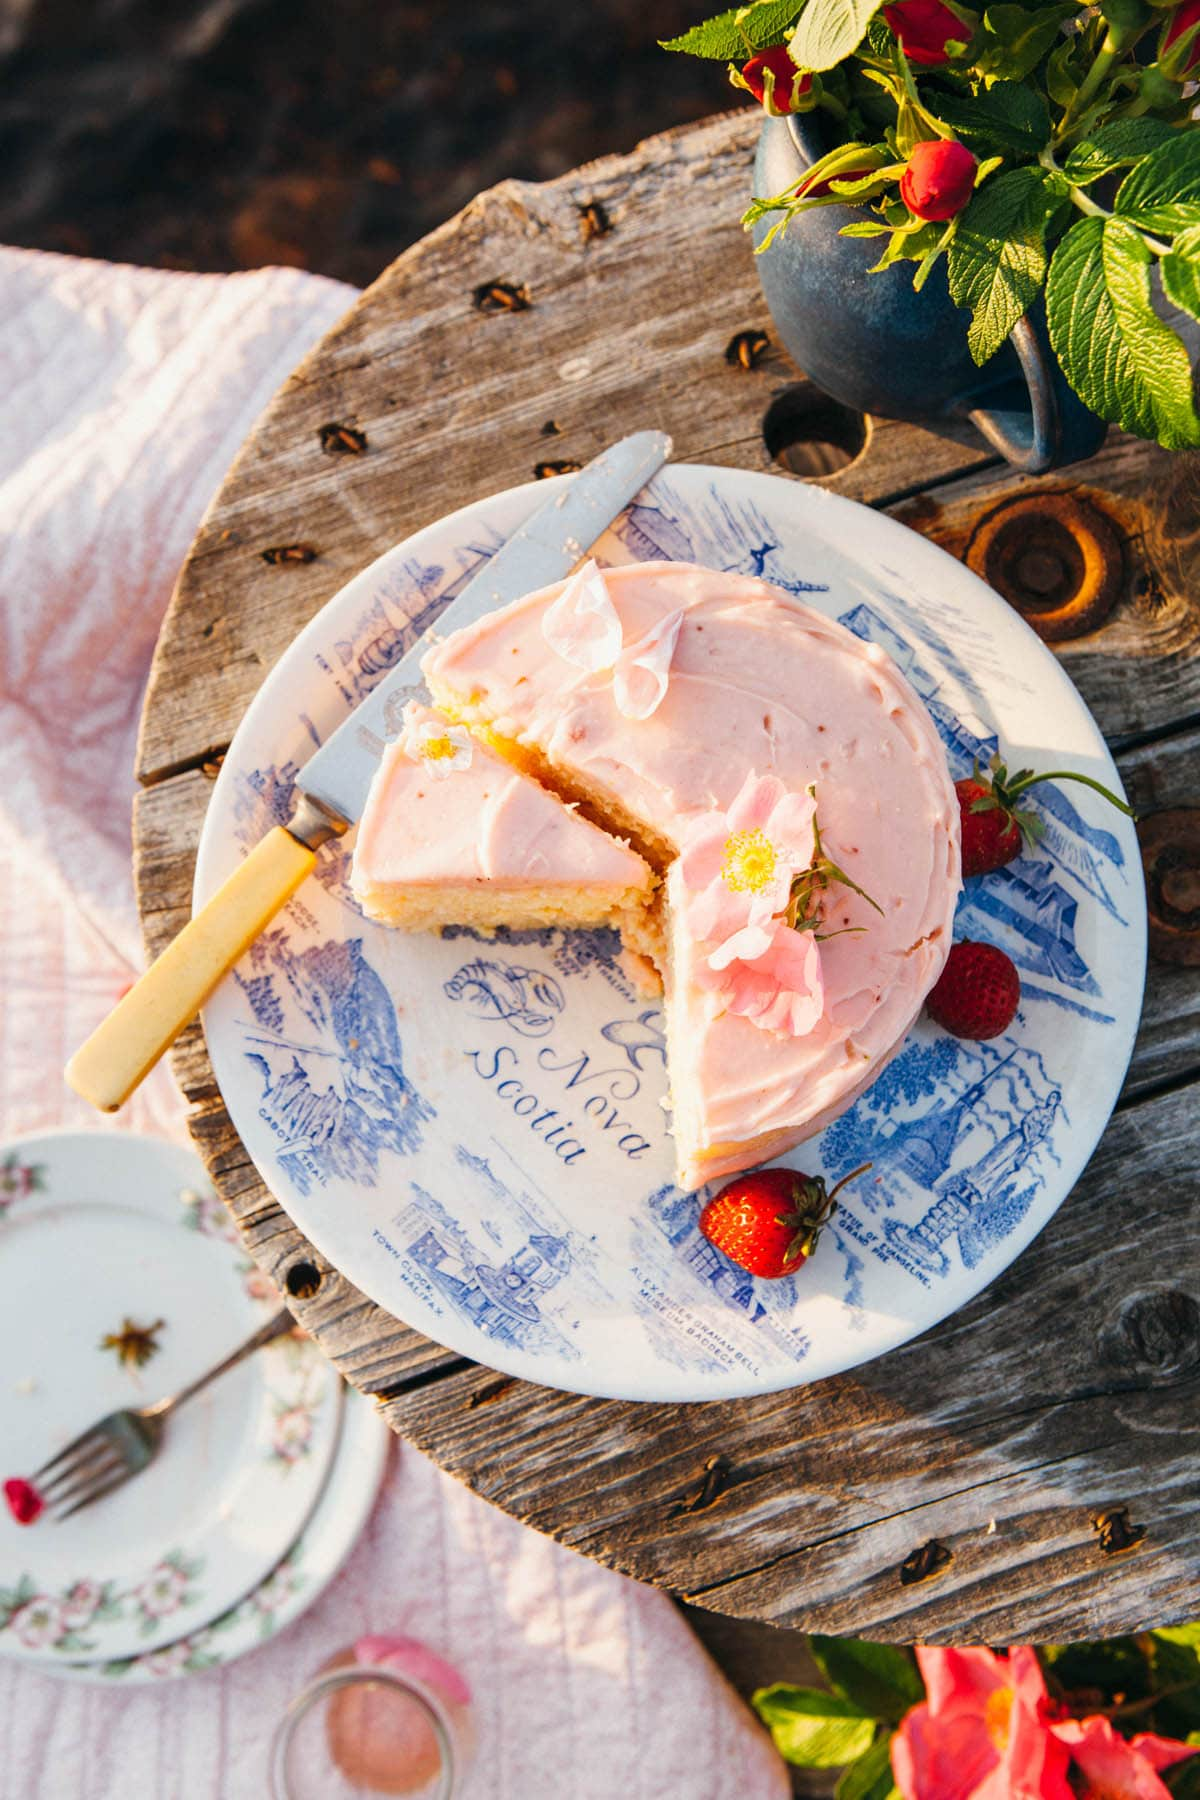 A 6-inch lemon buttermilk cake with strawberry jam-cream cheese icing.